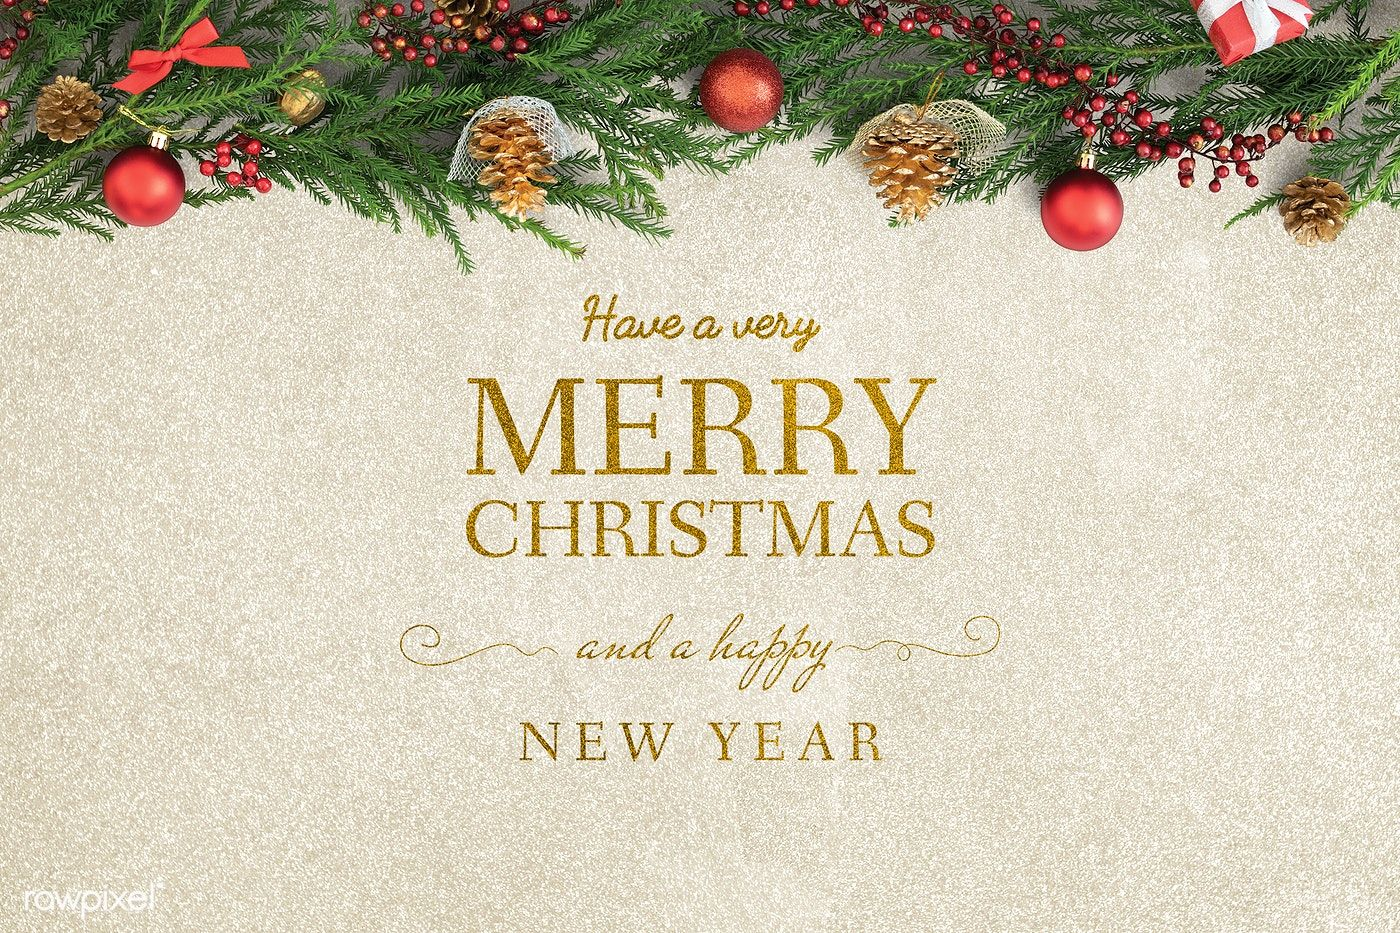 Download Premium Psd Of Merry Christmas And Happy New Year Greeting Card New Year Greeting Cards Happy New Year Greetings Merry Christmas And Happy New Year